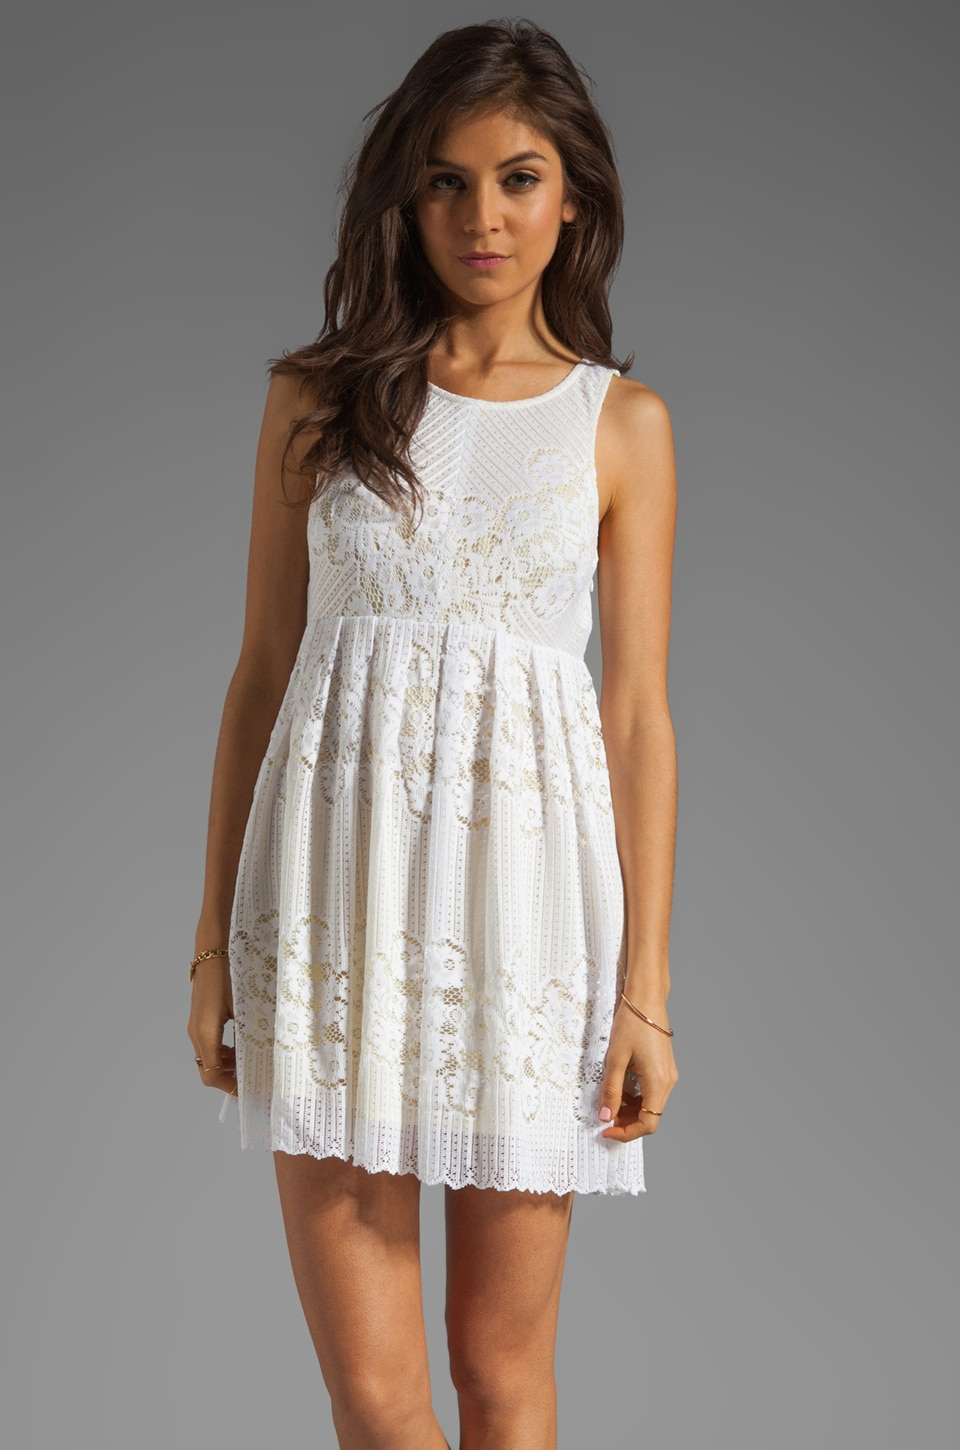 Free People Rocco Dress in White